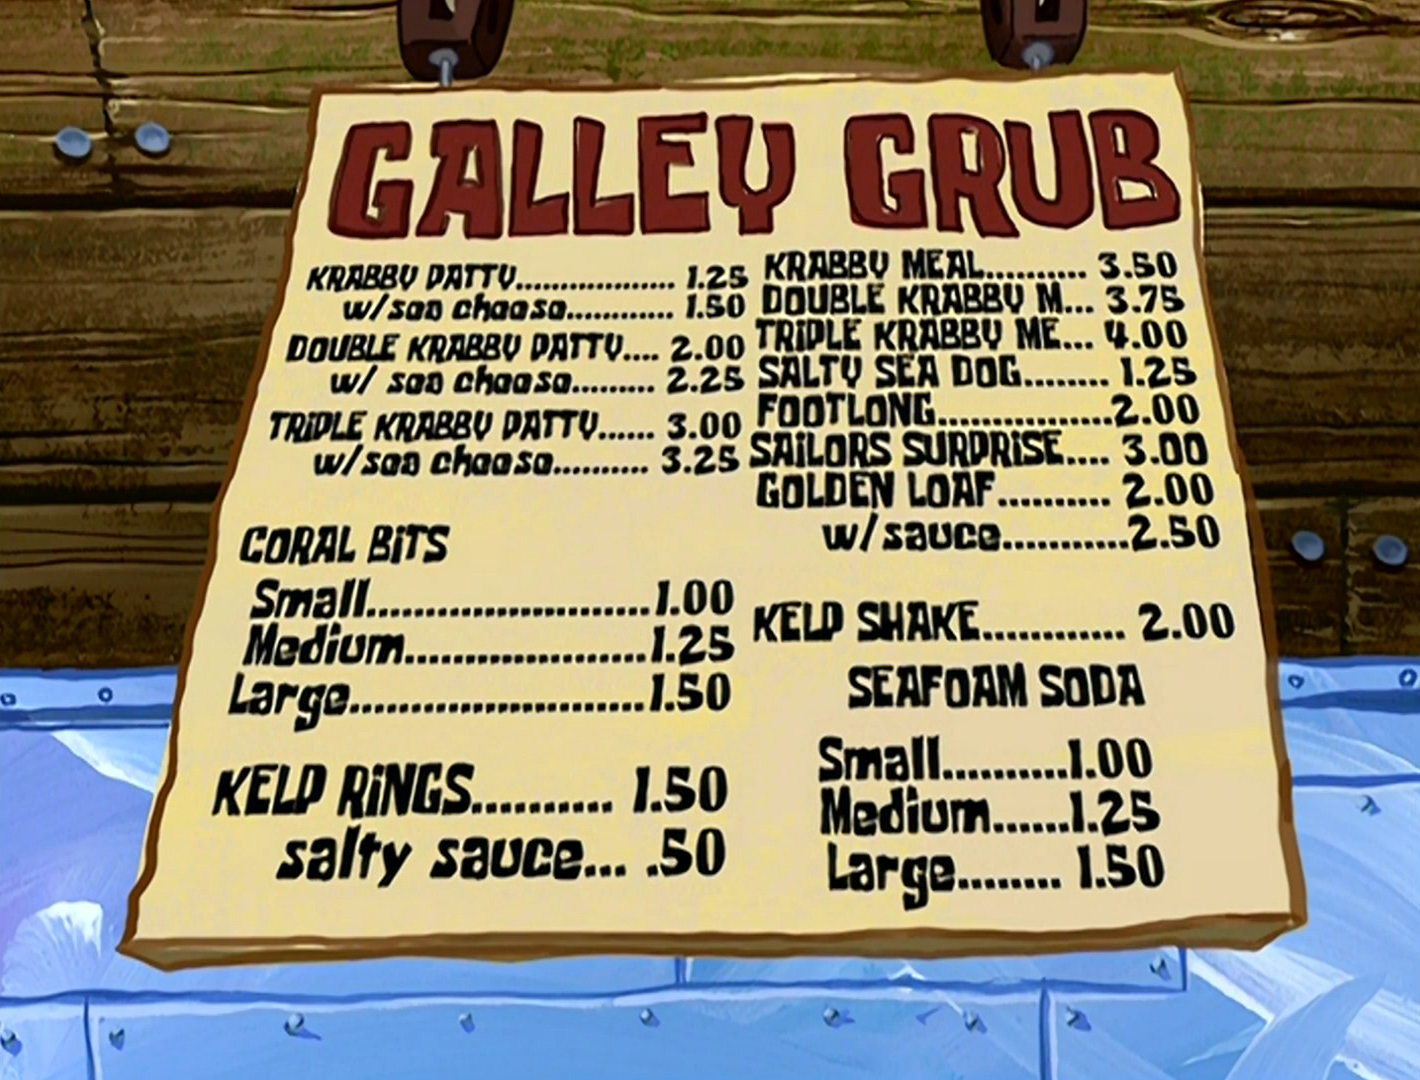 Galley Grub